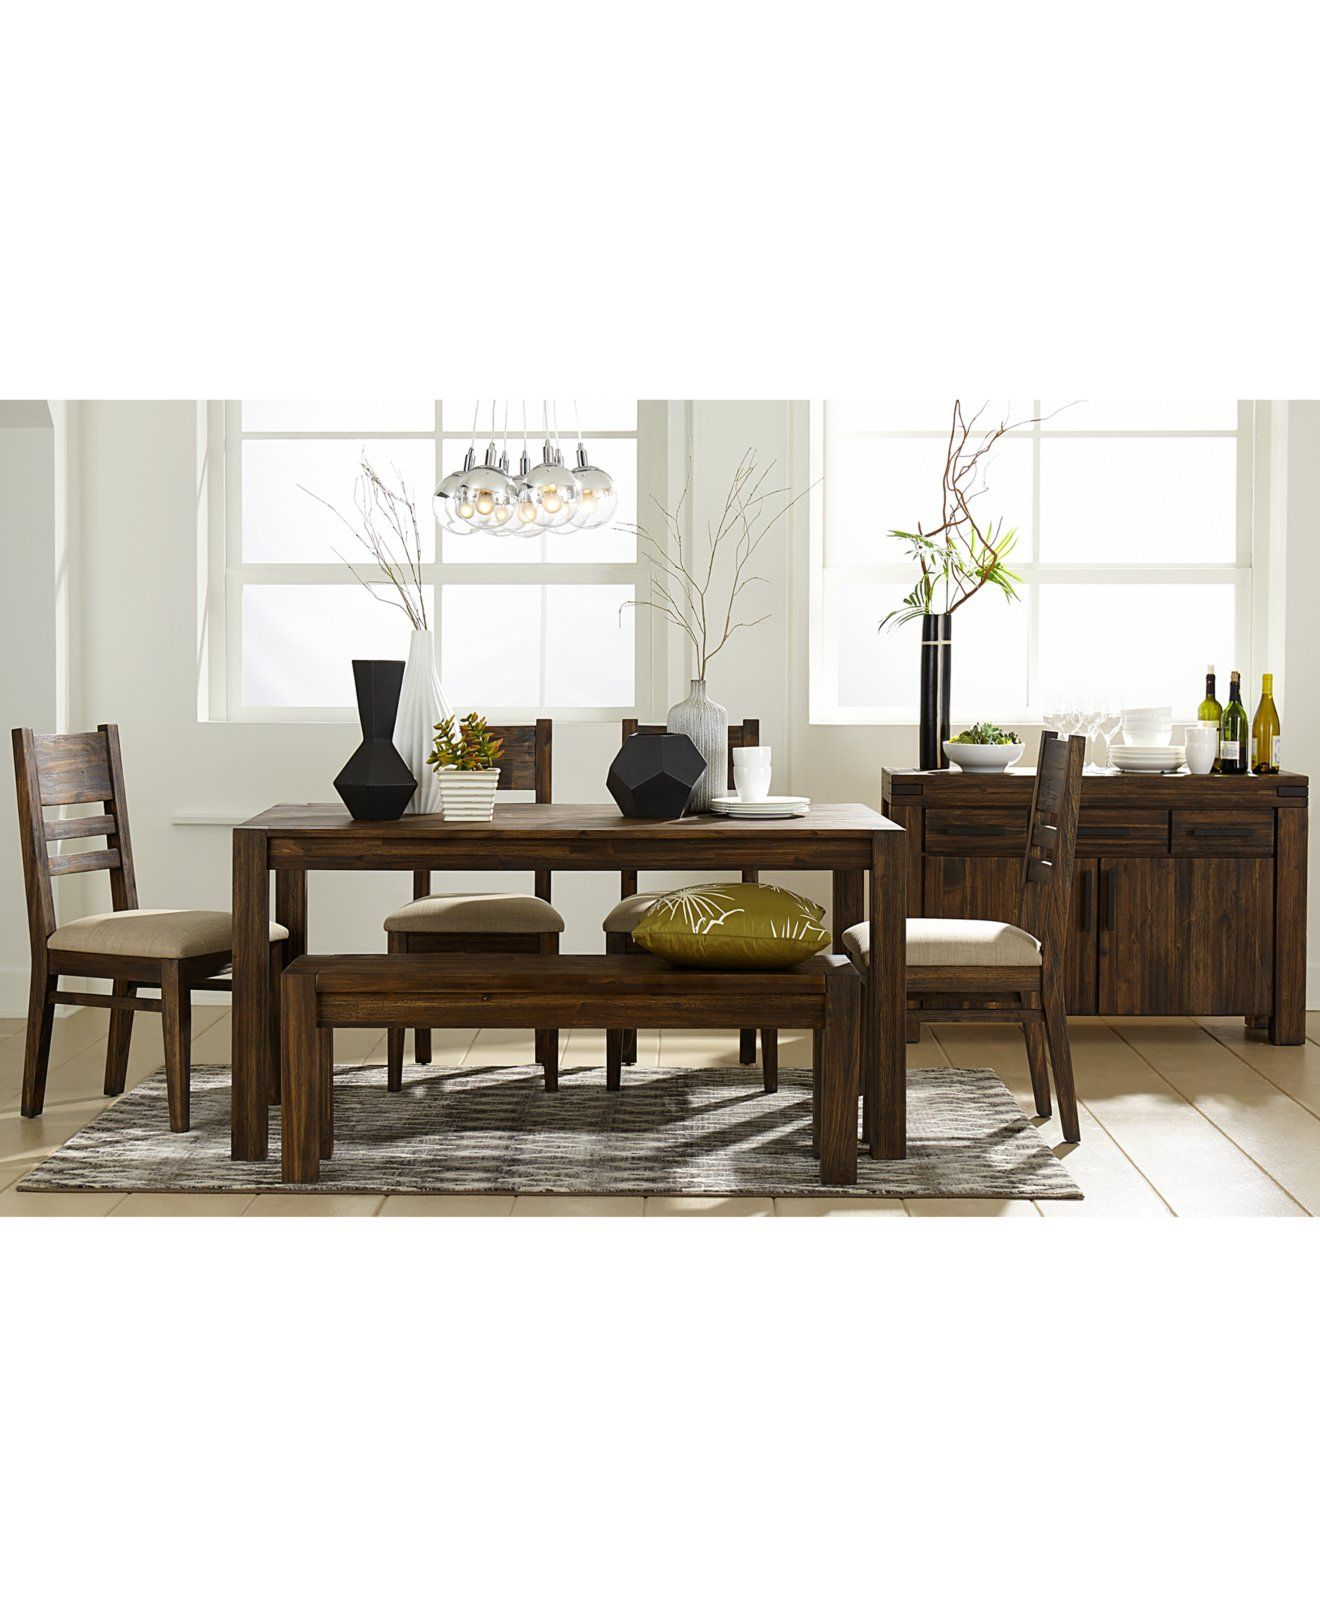 Avondale Dining Room Furniture Collection, Created for Macy\'s | Room ...